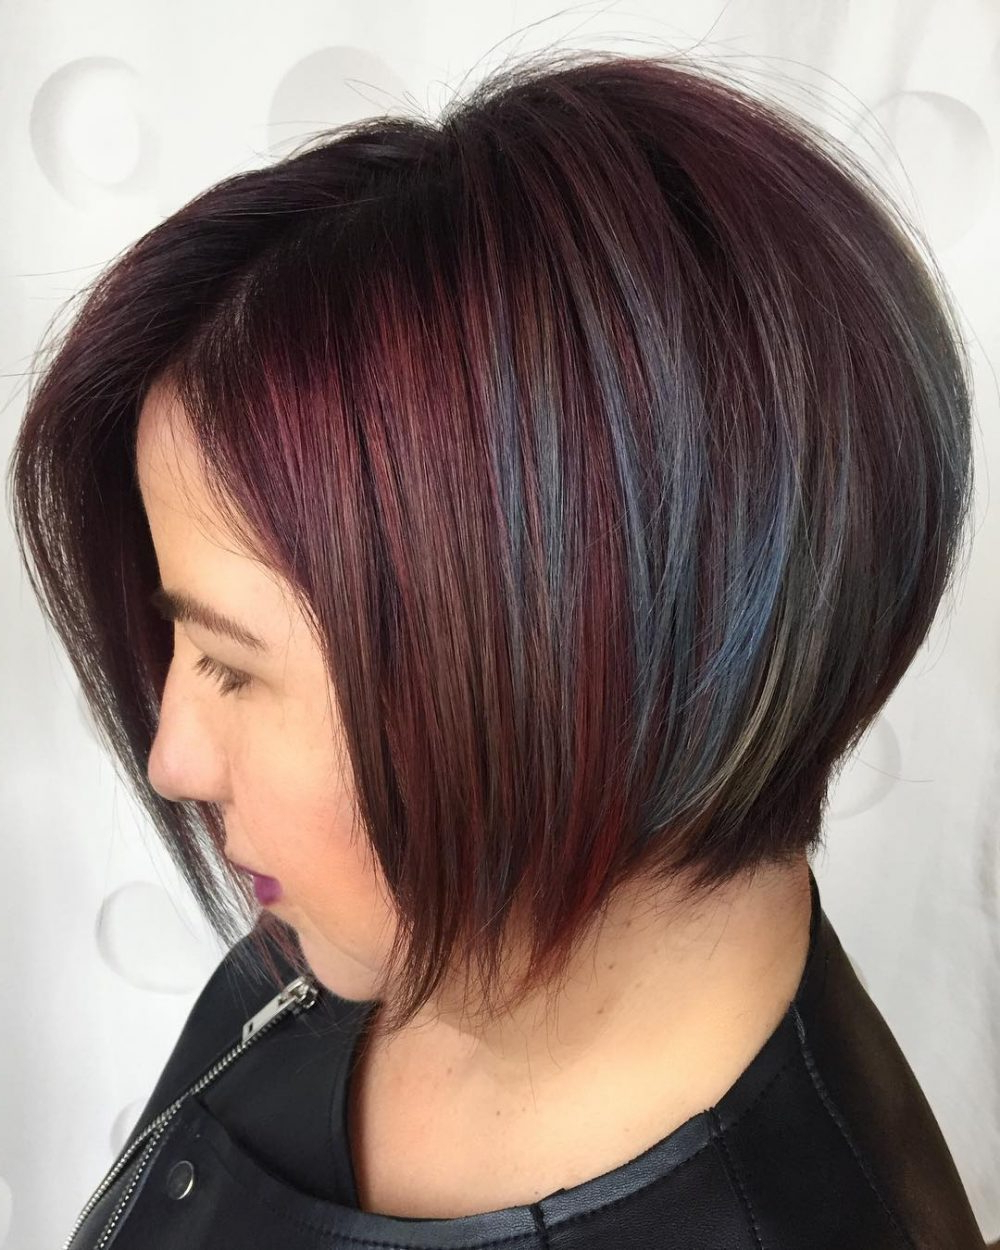 34 Greatest Short Haircuts And Hairstyles For Thick Hair For 2018 Intended For Short Haircuts For Thick Frizzy Hair (View 10 of 25)